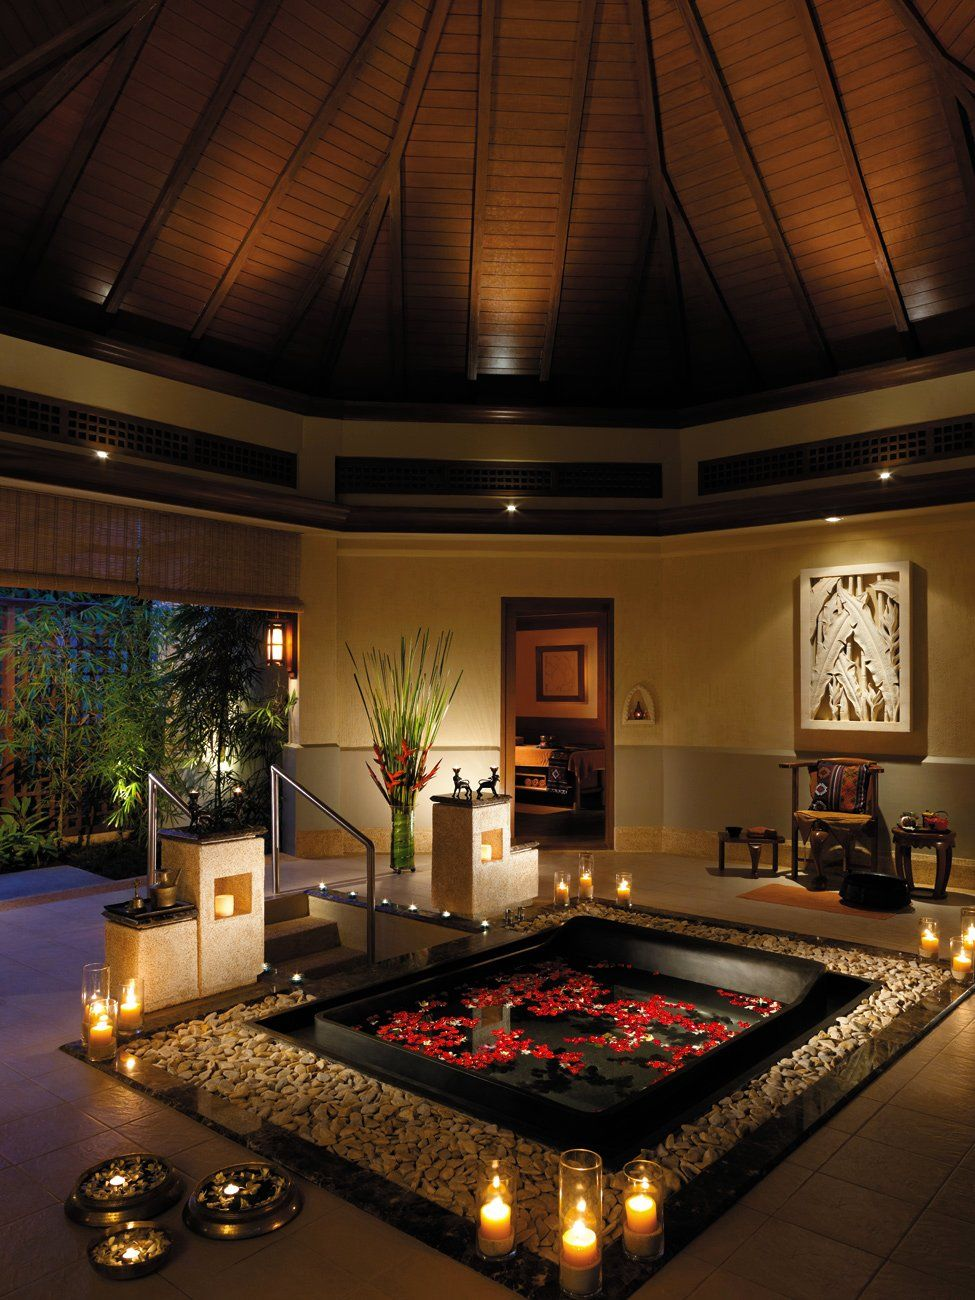 Luxurious Hot Tub Romantic Bathrooms Dream Bathrooms Beautiful Bathrooms